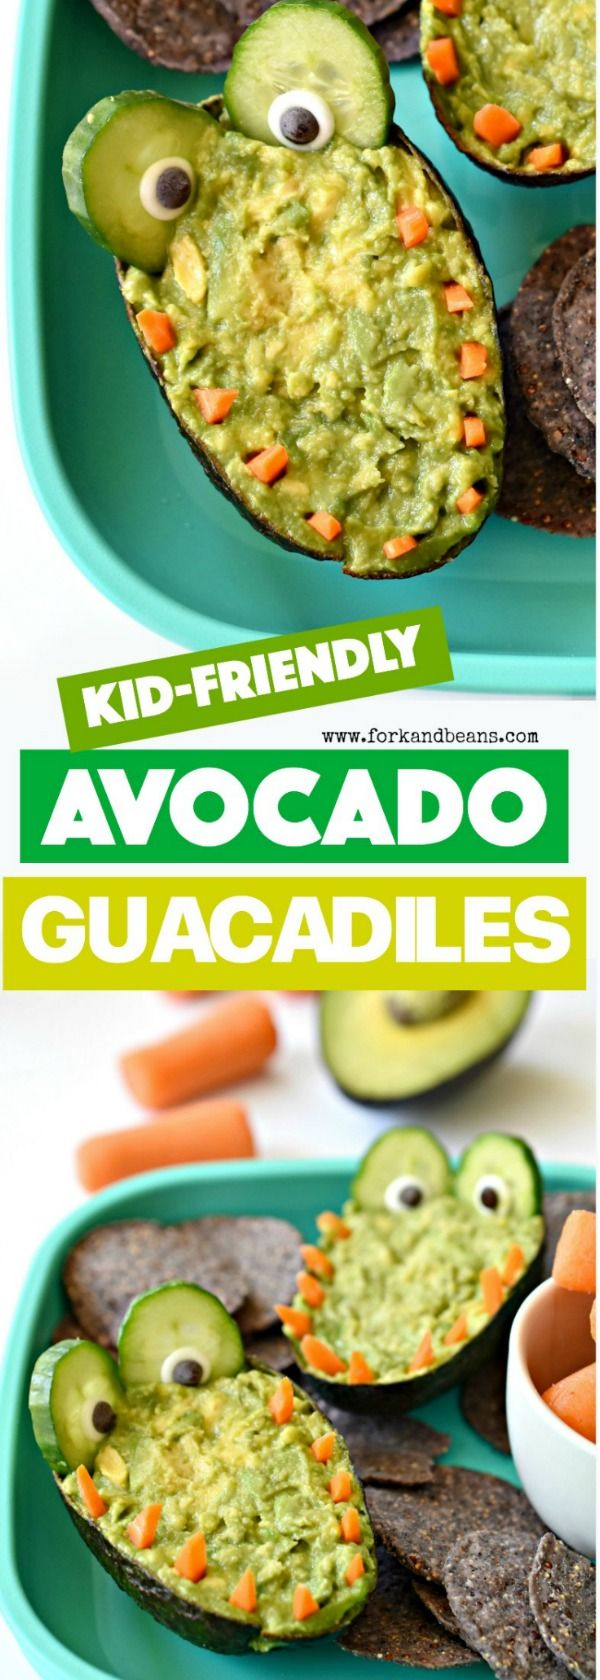 Surprise your kids with this superfood-filled, healthy Guacadile Dip. It's the perfect after-school or on-the-go snack.